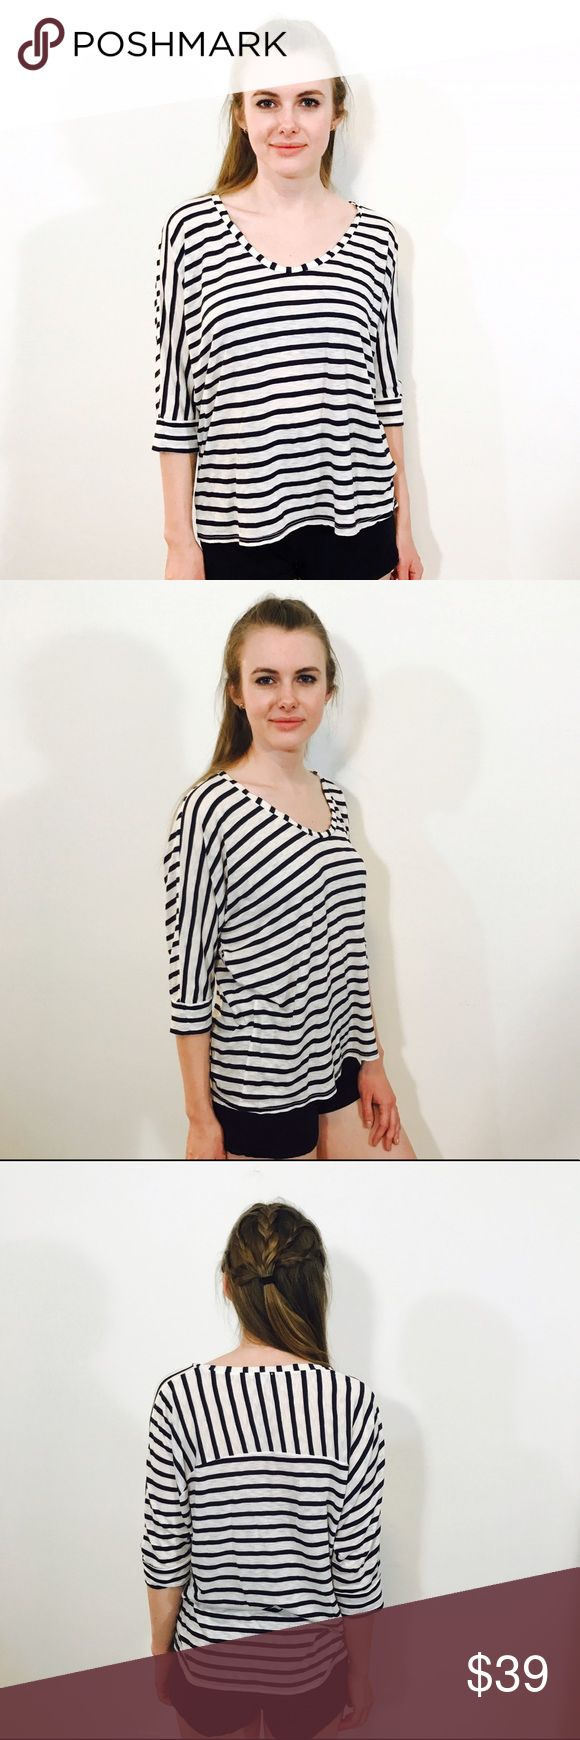 SPLENDID STRIPED NAUTICAL LIGHTWEIGHT BATWING TOP Breathable, casual and fun. EUC, no issues. Splendid Tops